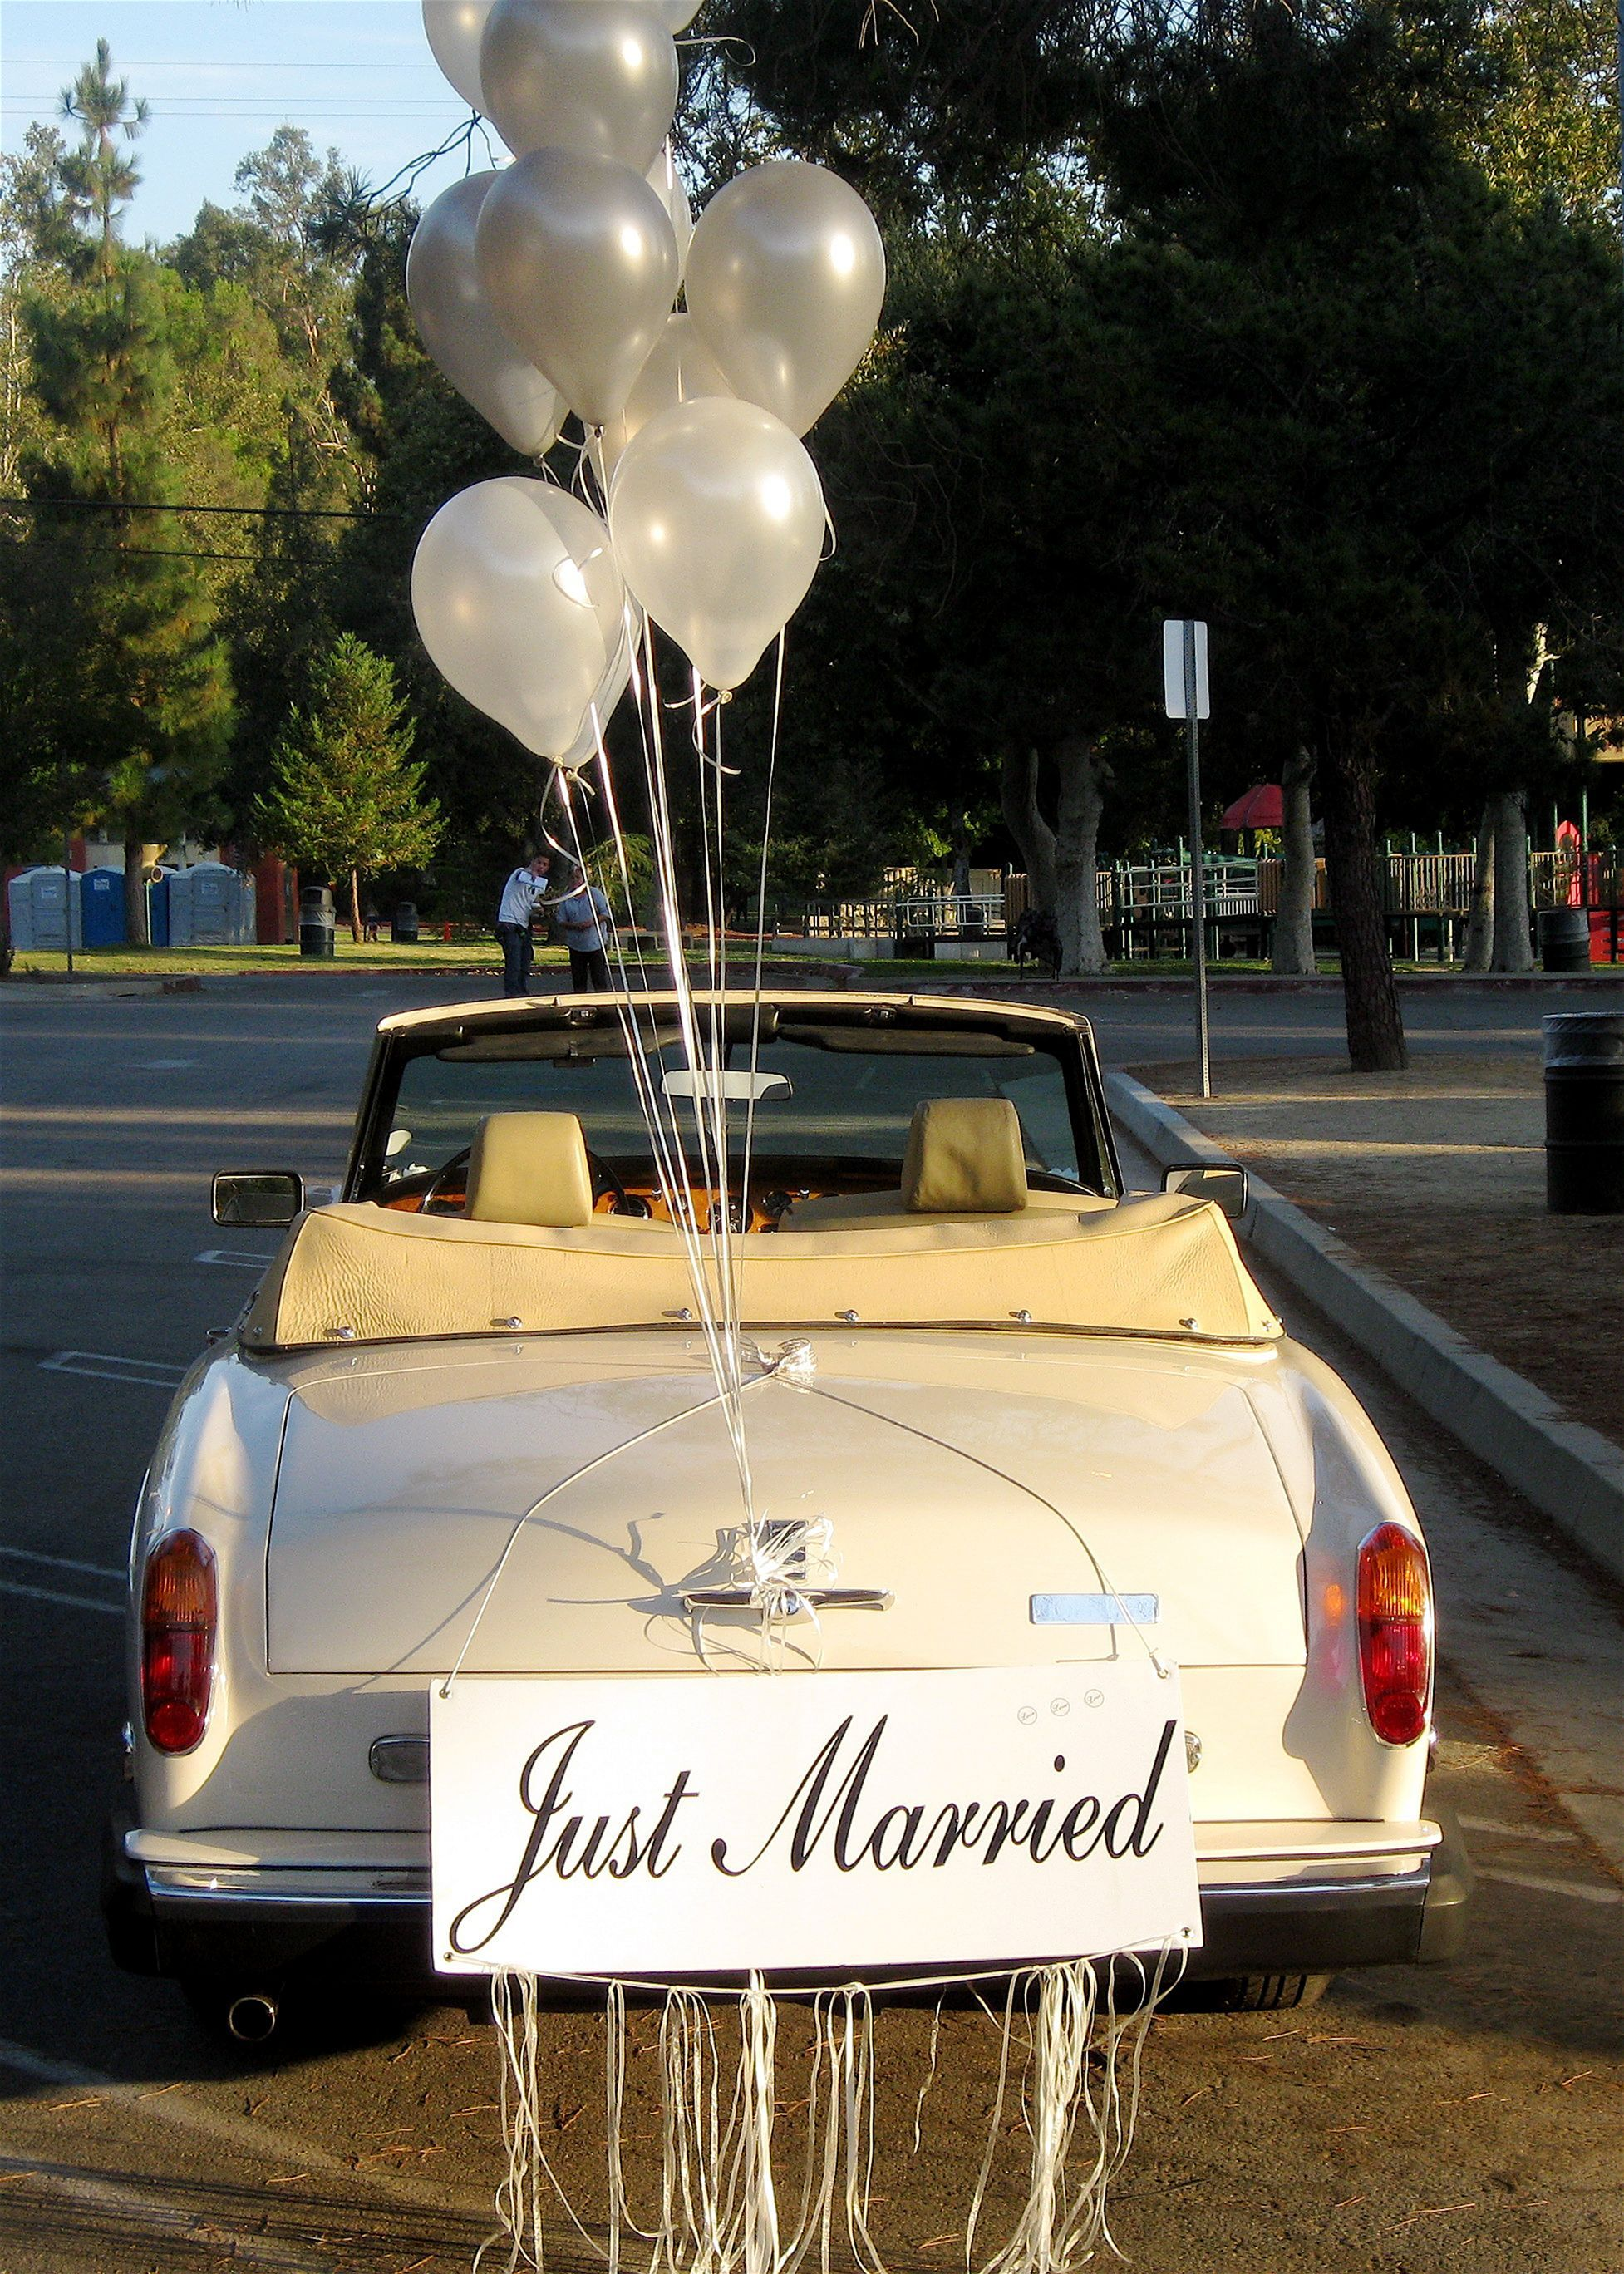 Wedding decorations for car   Awesome Wedding Car Decorations Ideas  Weddings